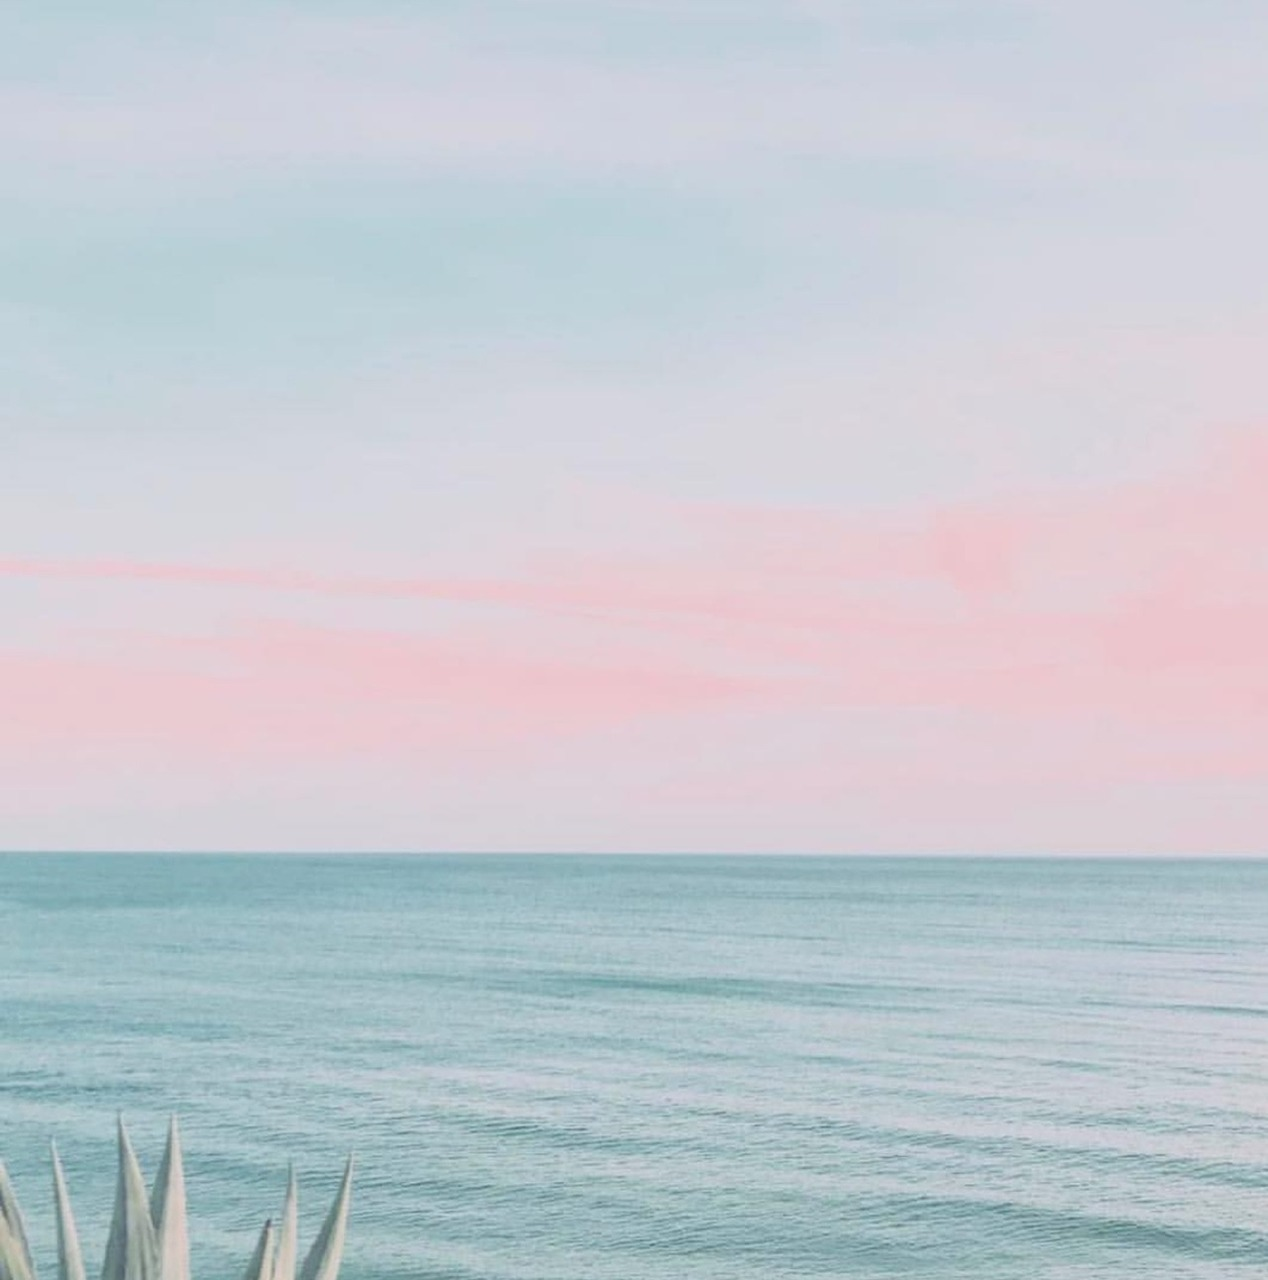 Pastel Aesthetic Tumblr Uploaded By C R Y B A B Y An aesthetic is generally a type of look it's also a. pastel aesthetic tumblr uploaded by